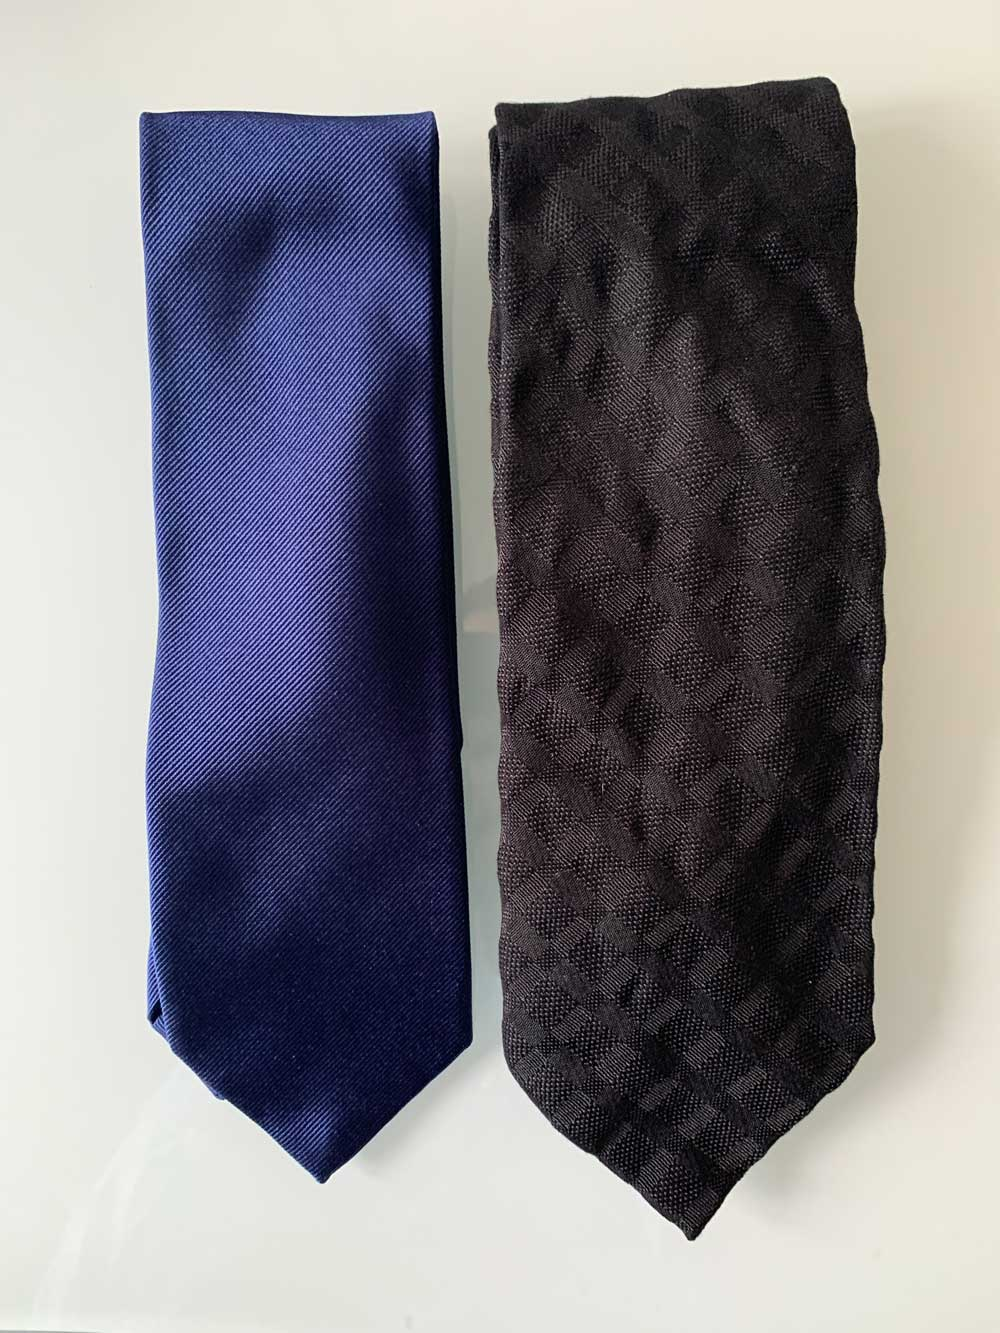 Tom Ford Ties from Spectre